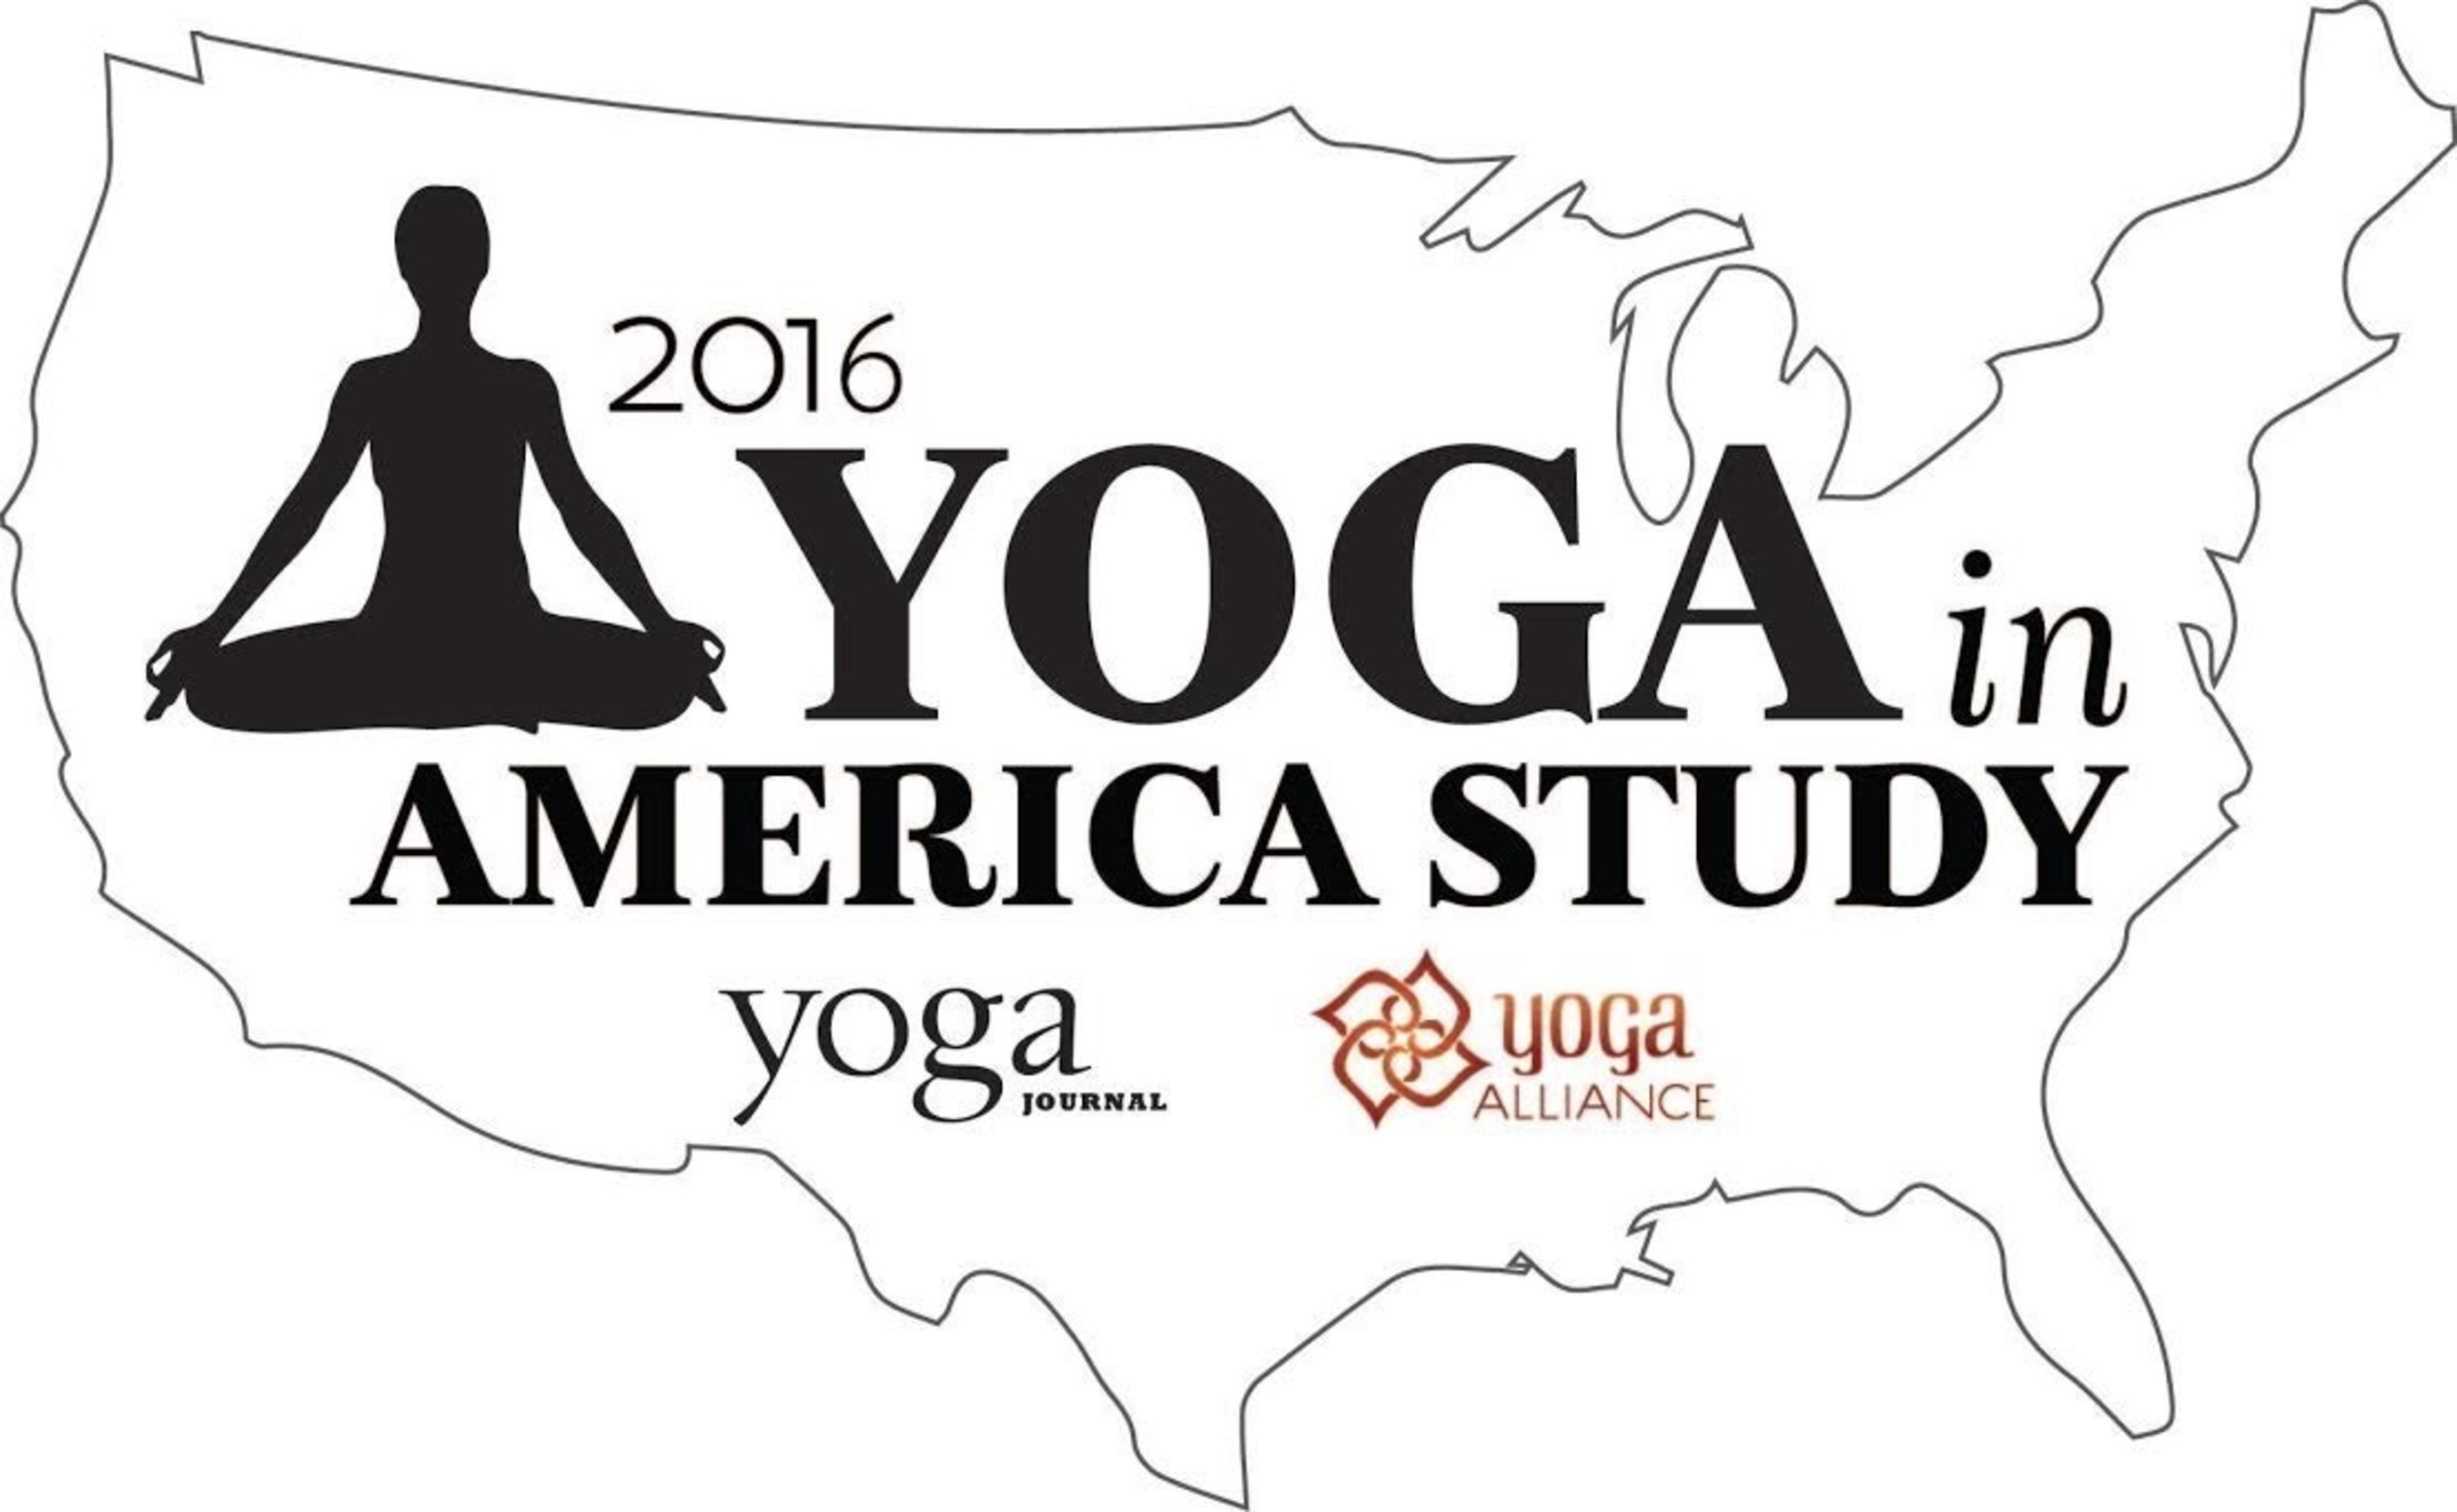 2016 Yoga in America Study Conducted by Yoga Journal and Yoga Alliance